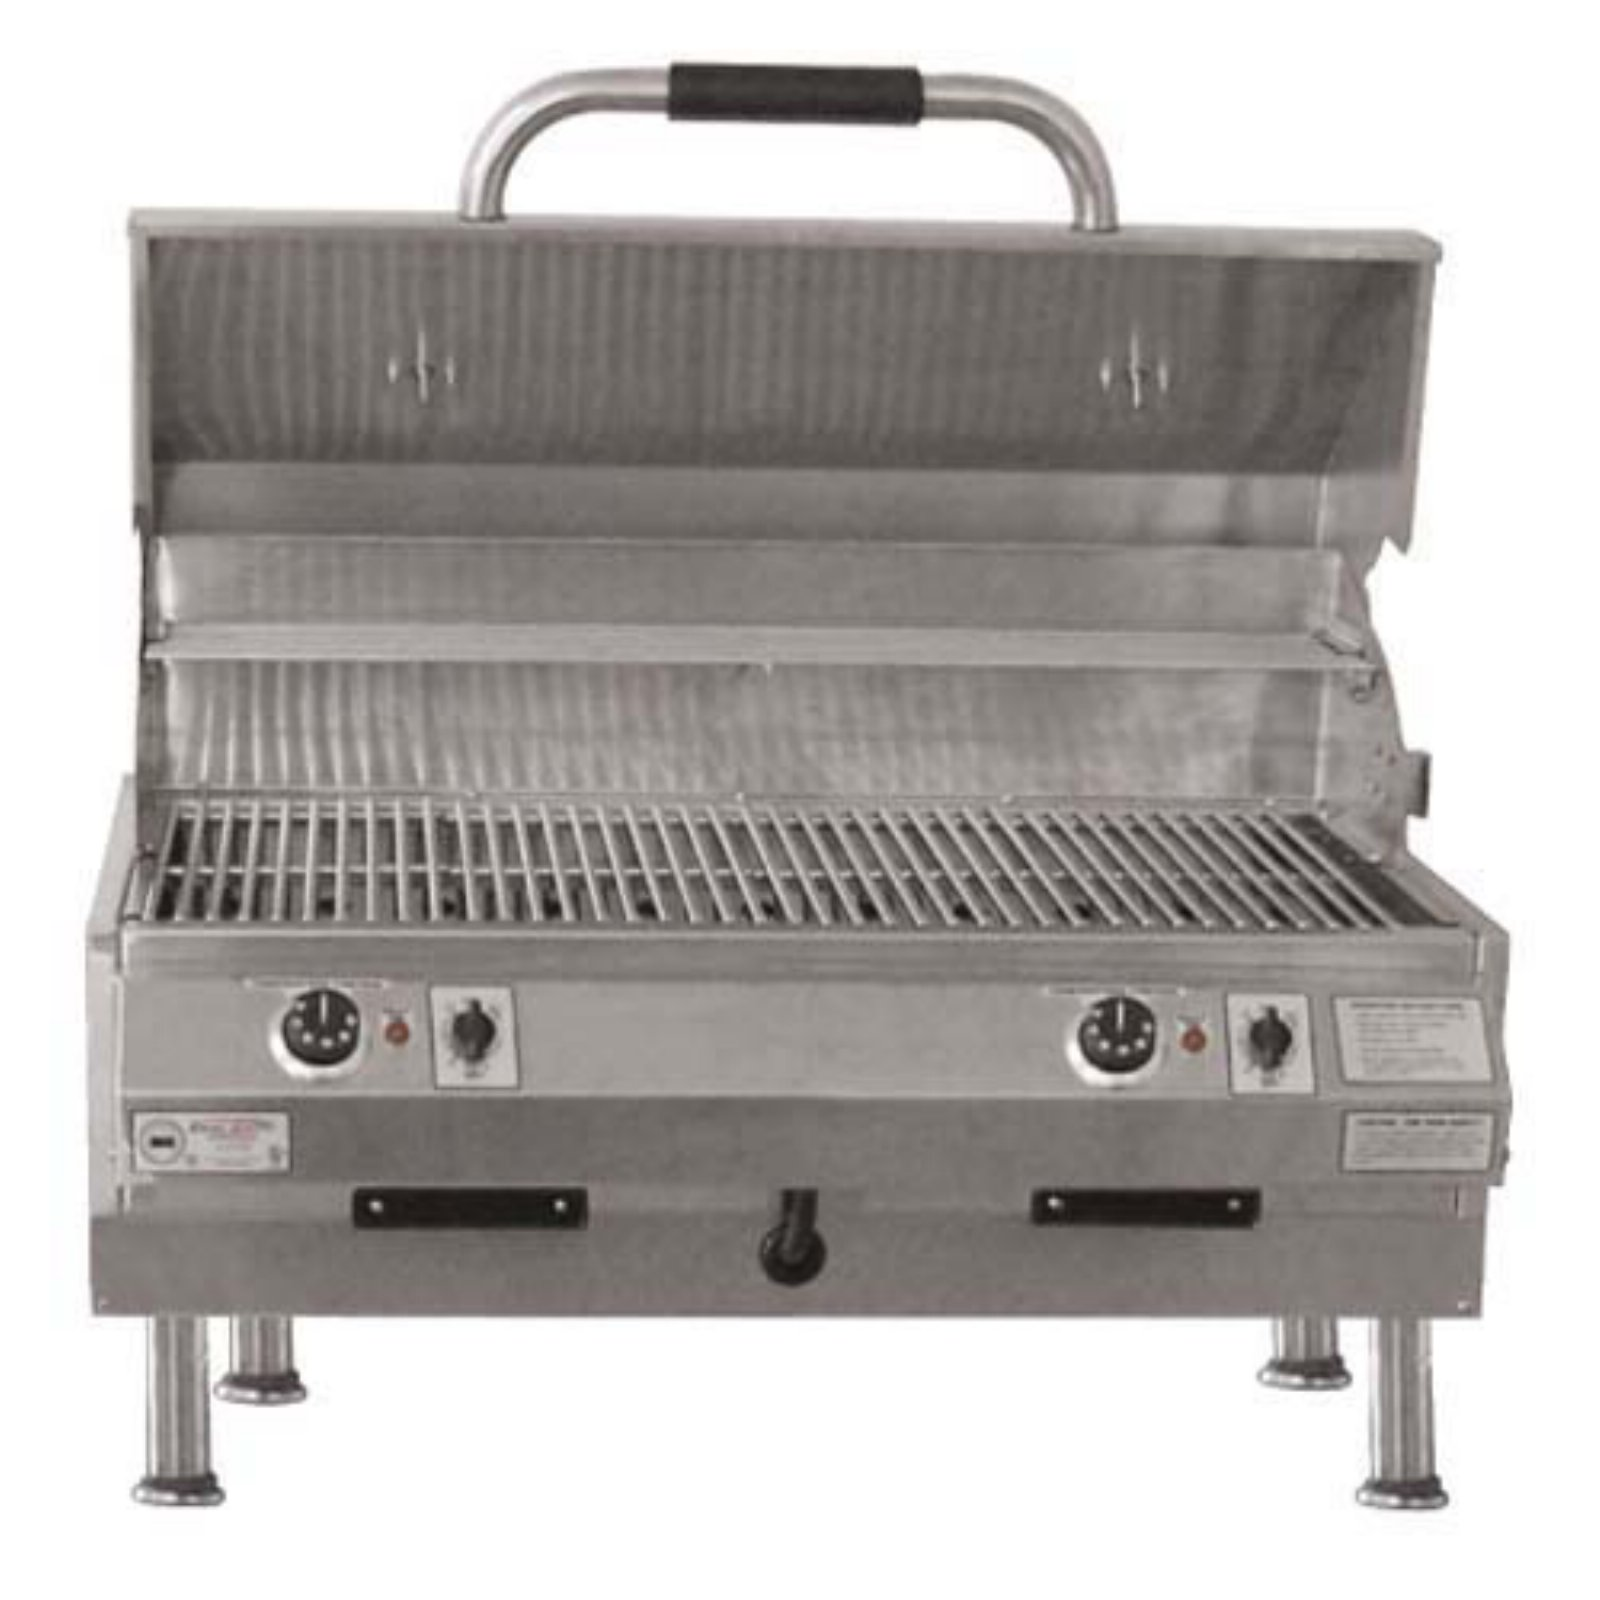 Electri-Chef 32 in. Tabletop Electric Grill Dual Burner by Electri - Chef Grill